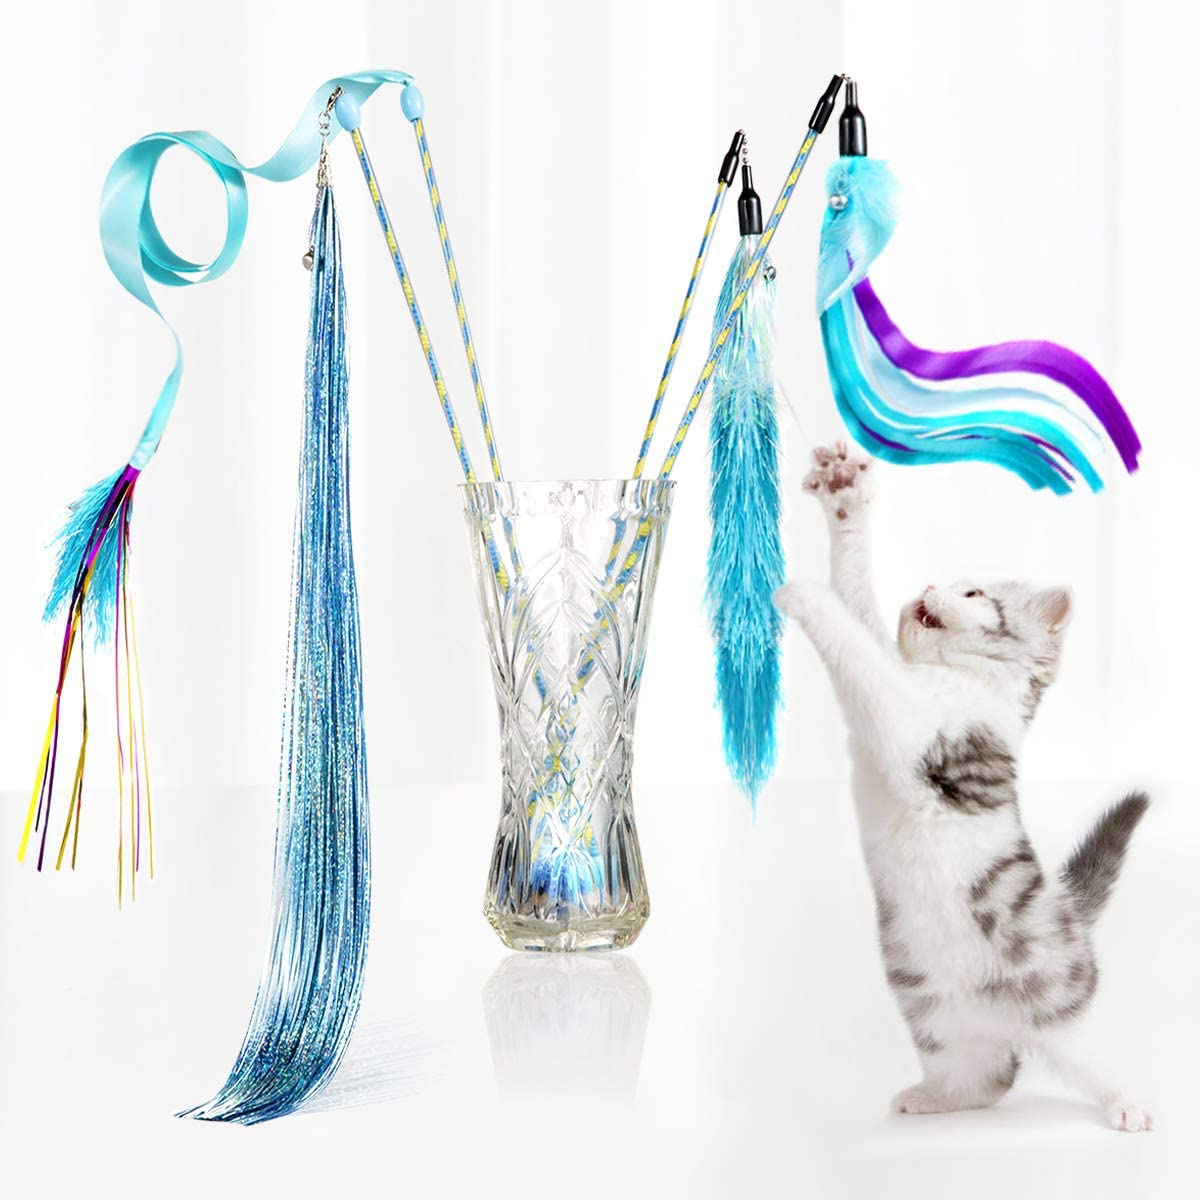 D.Home Cat Feather Toys Interactive Hunt Ranking TOP17 Toy Free shipping on posting reviews Wand Kitten